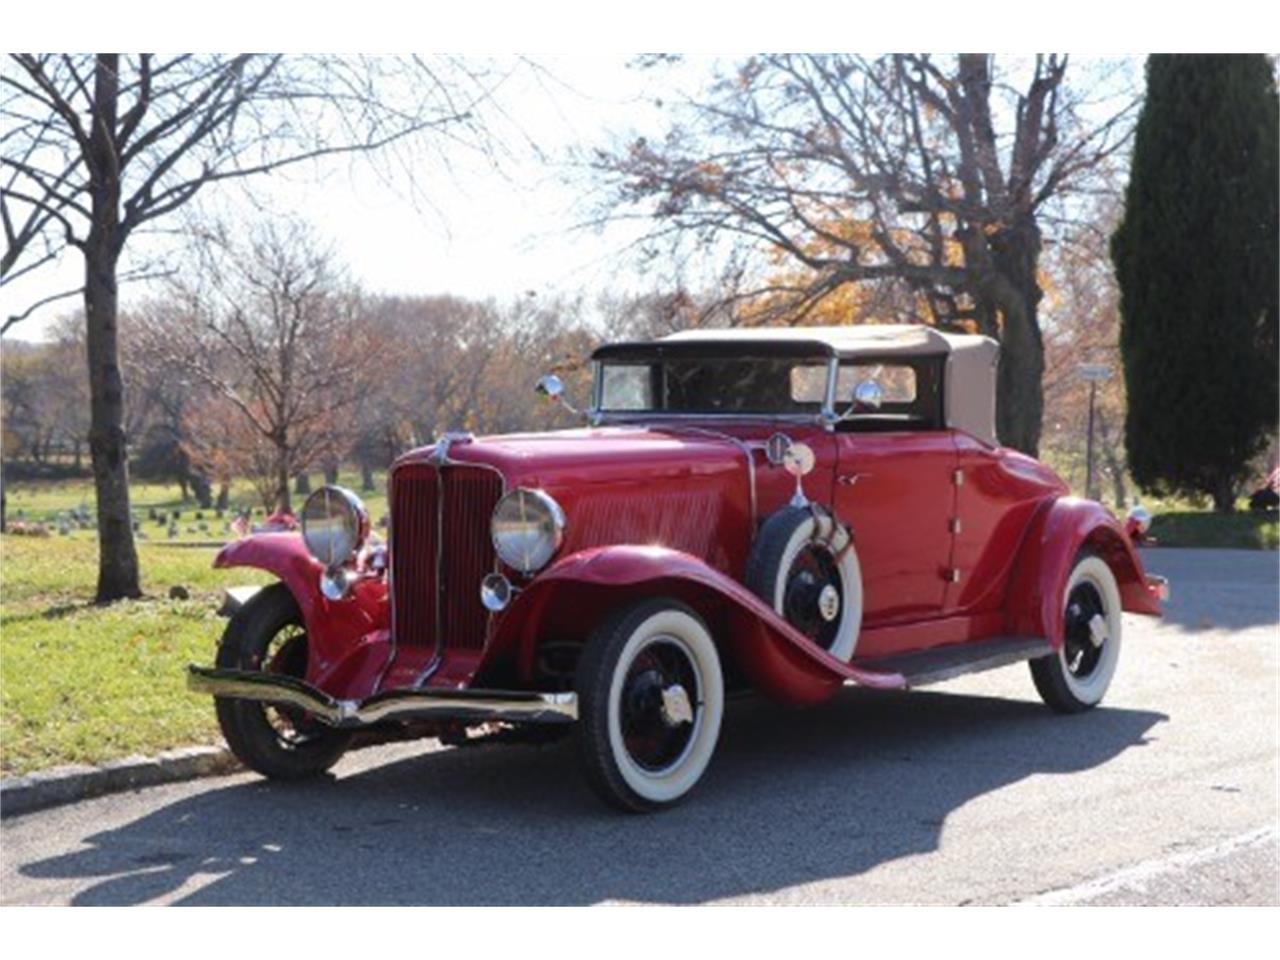 Large Picture of '31 Auburn 8-98A - $87,500.00 - JWLH